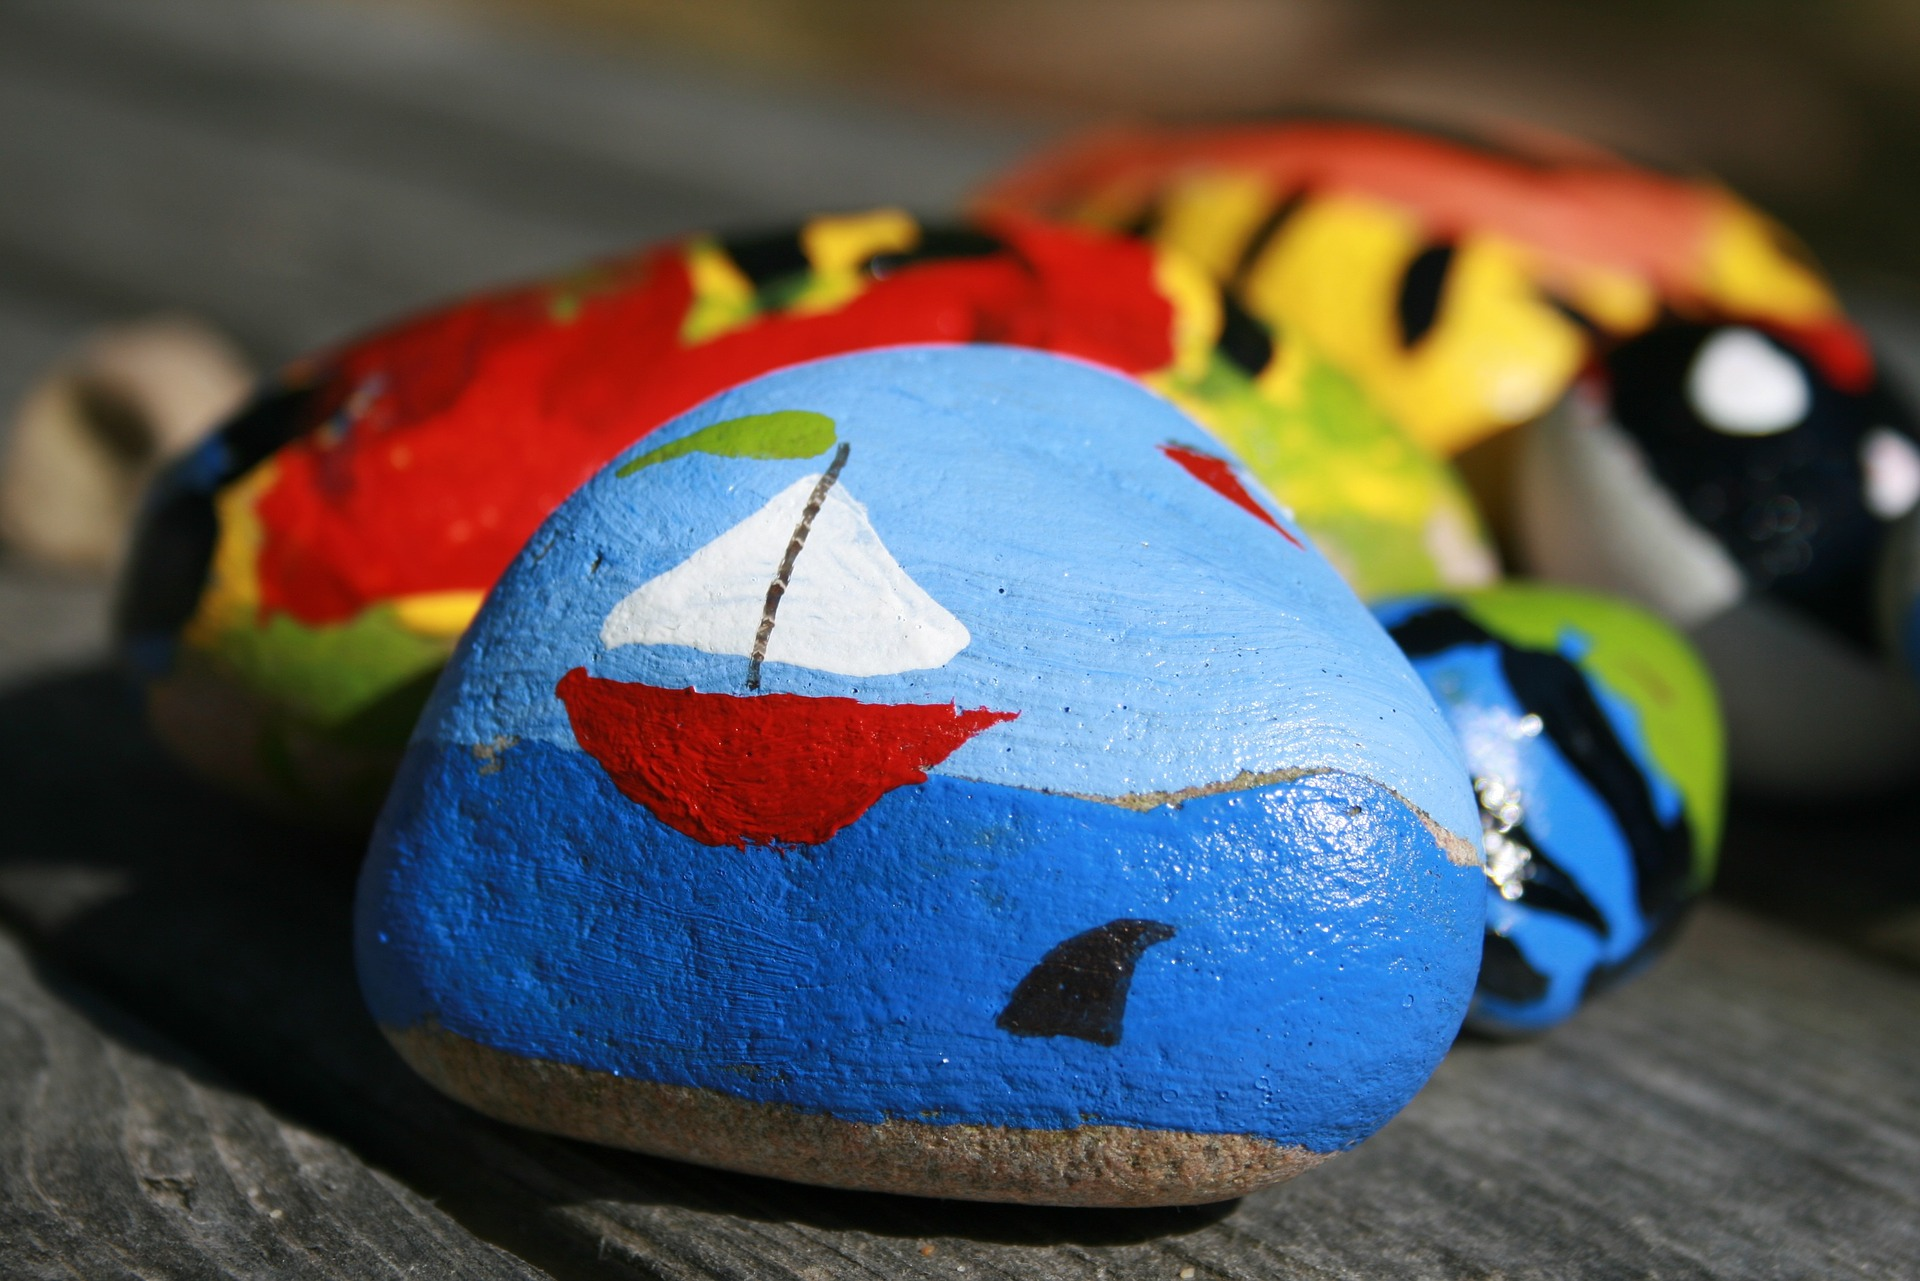 painted rocks for craft activity